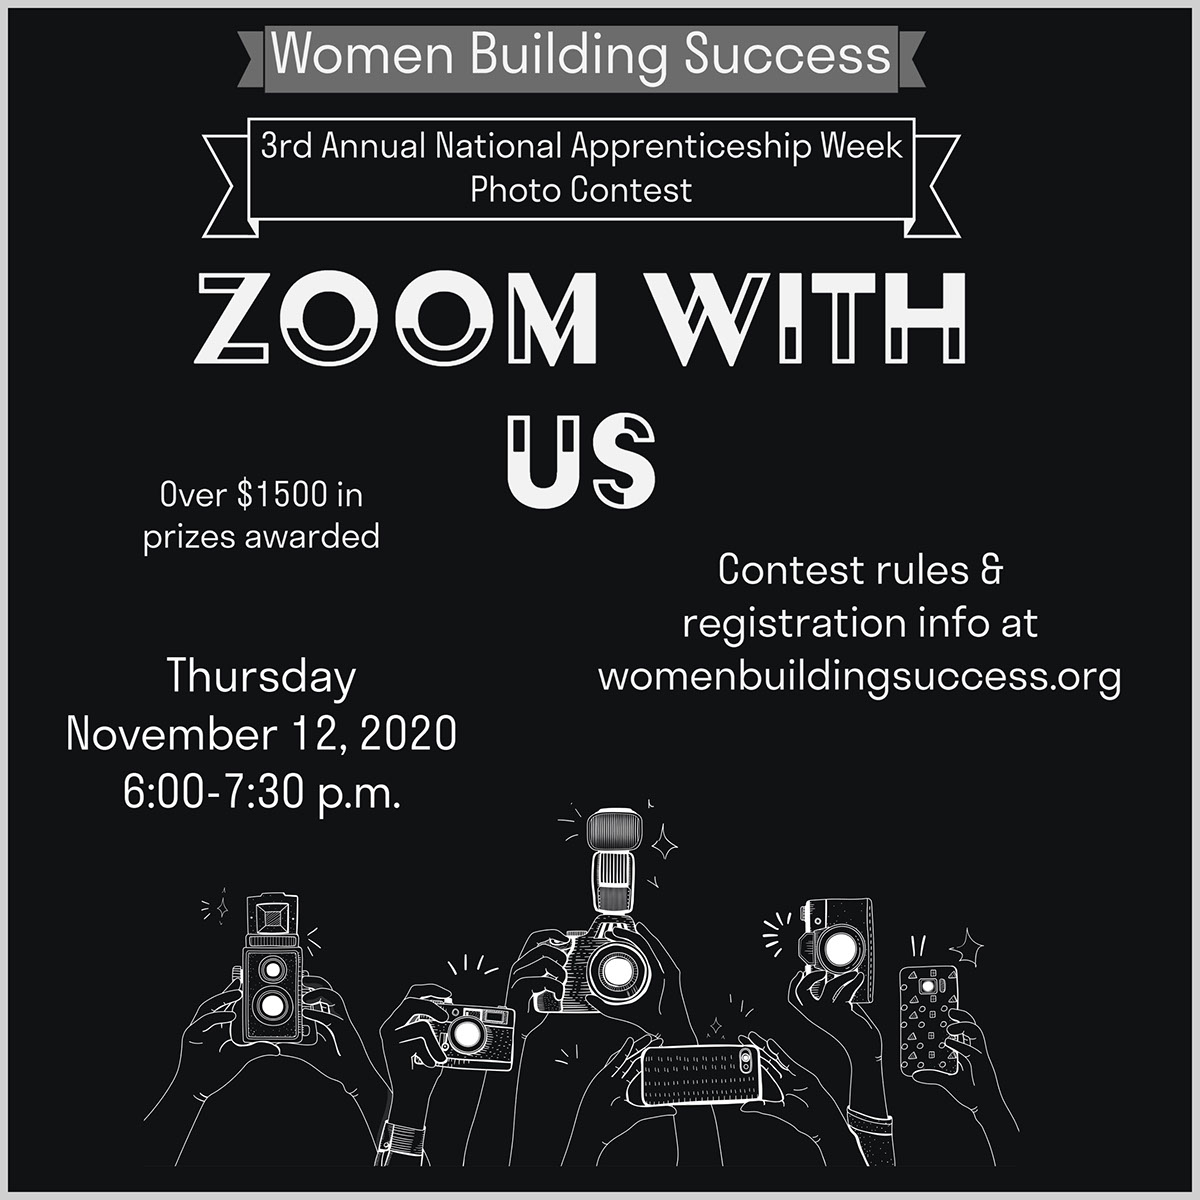 Zoom with us Zoom with us Women Building Success Thursday November 12, 2020 6:00-7:30 p.m. Contest rules & registration info at womenbuildingsuccess.org 3rd Annual National Apprenticeship Week Photo Contest Over $1500 in prizes awarded